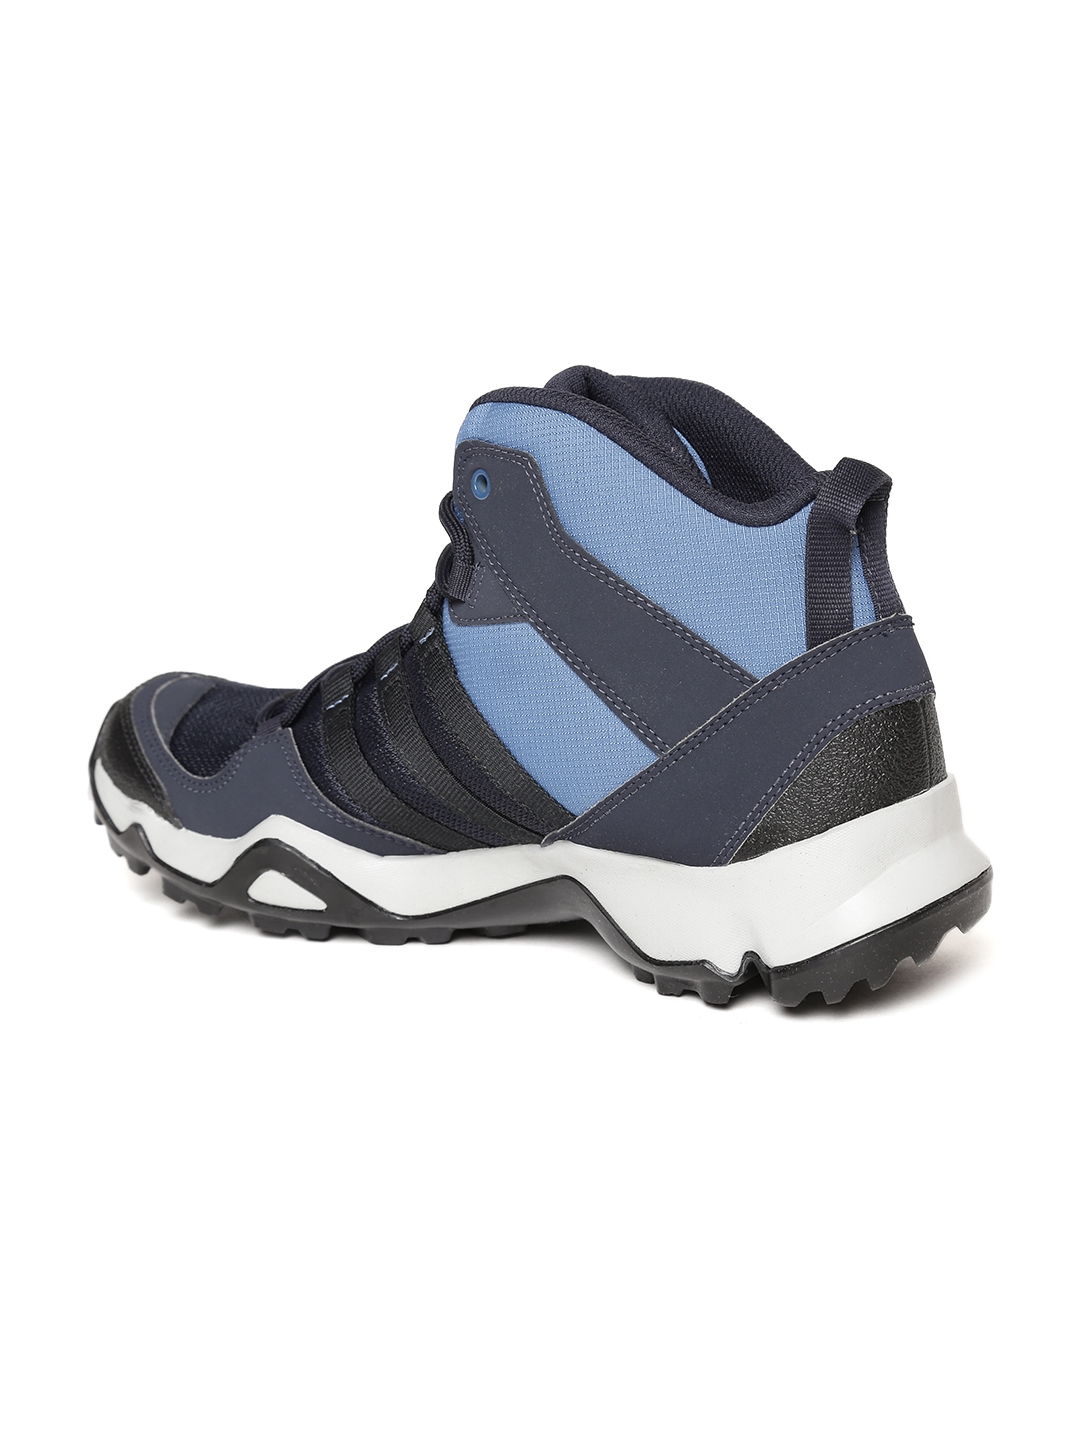 ca3ec27a1bb8 Buy Adidas Men Blue   Black Path Cross Mid AX2 Trekking Shoes ...